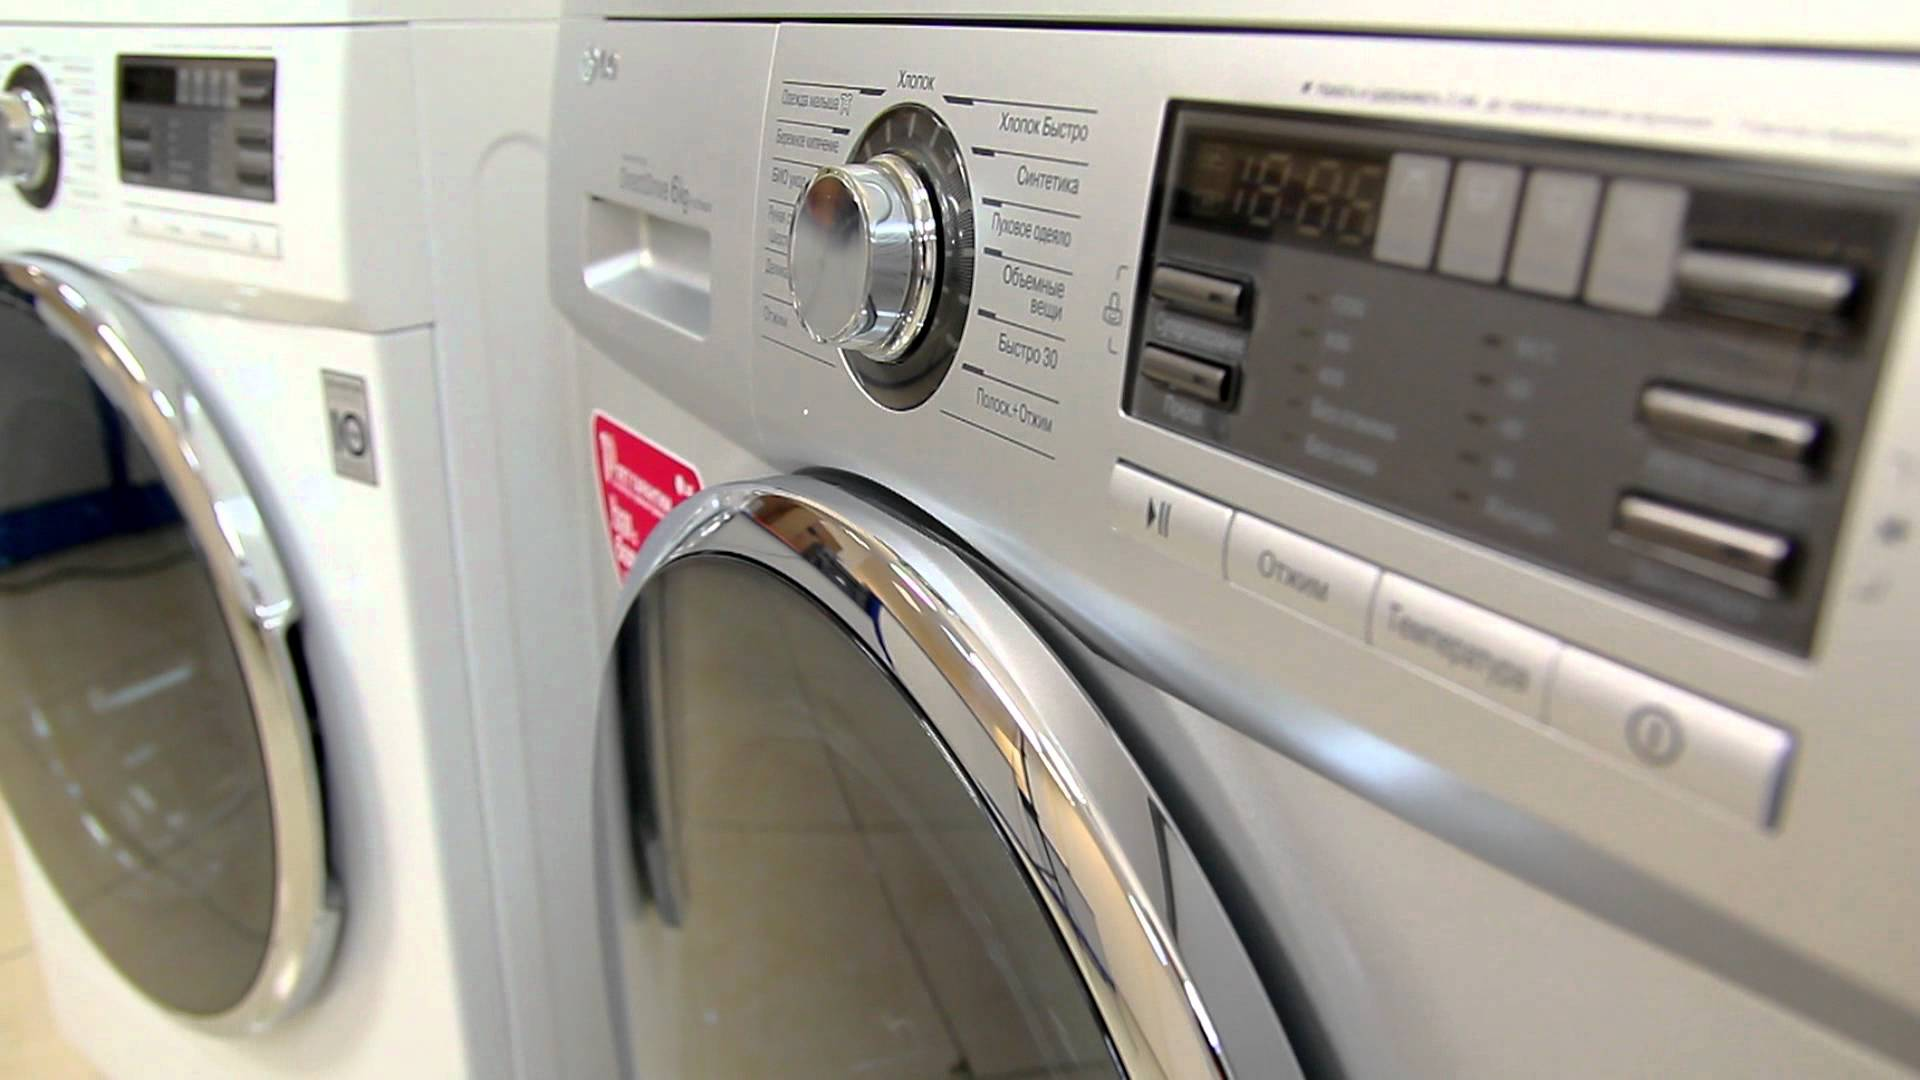 Washer LG F1096ND5